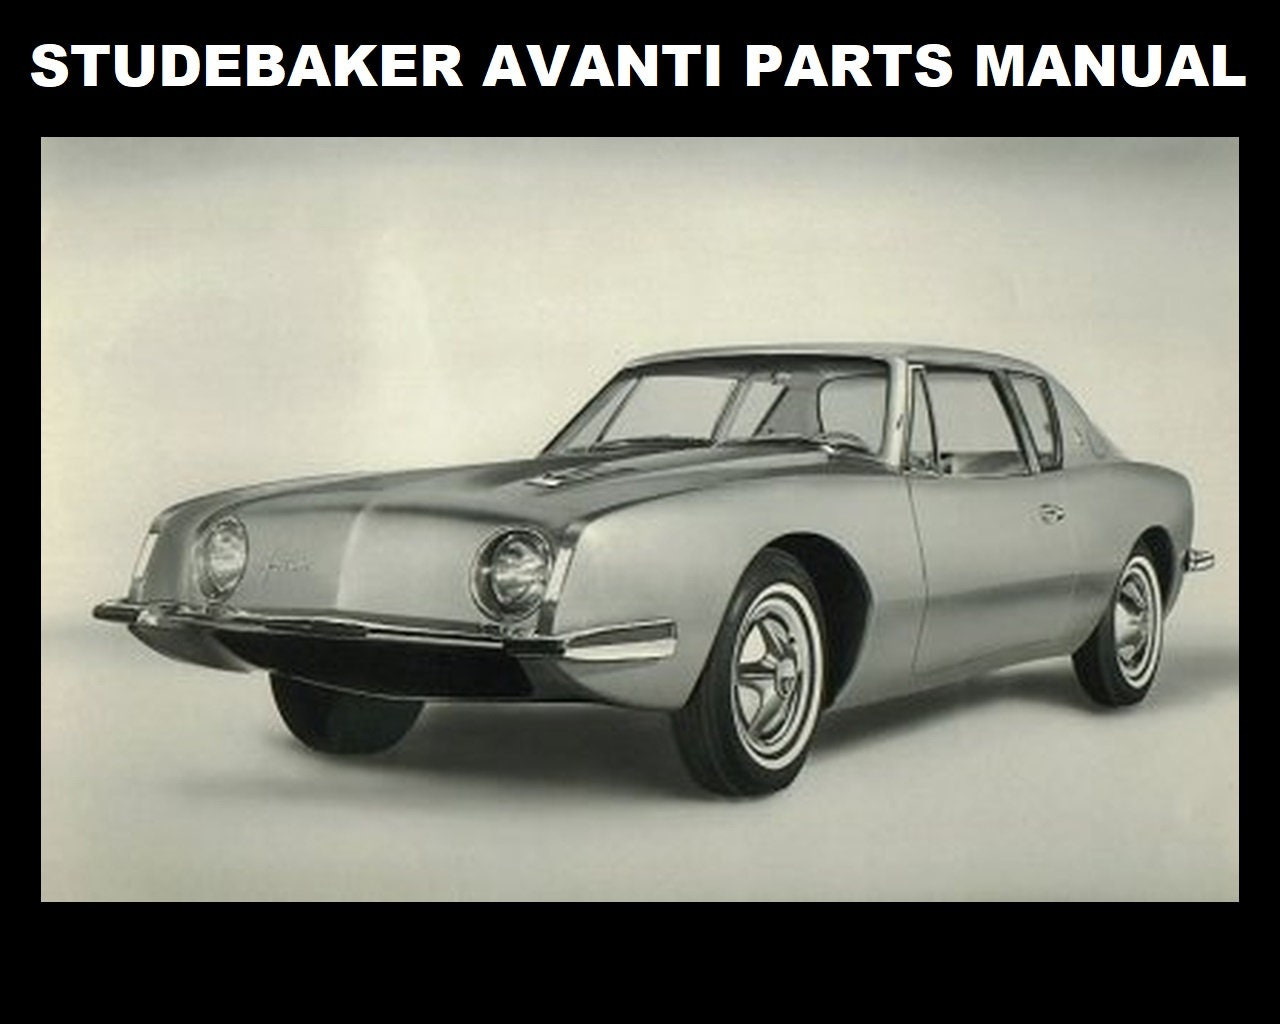 Studebaker Avanti Parts Manual 260pgs With Detailed Exploded Etsy Engine Diagrams